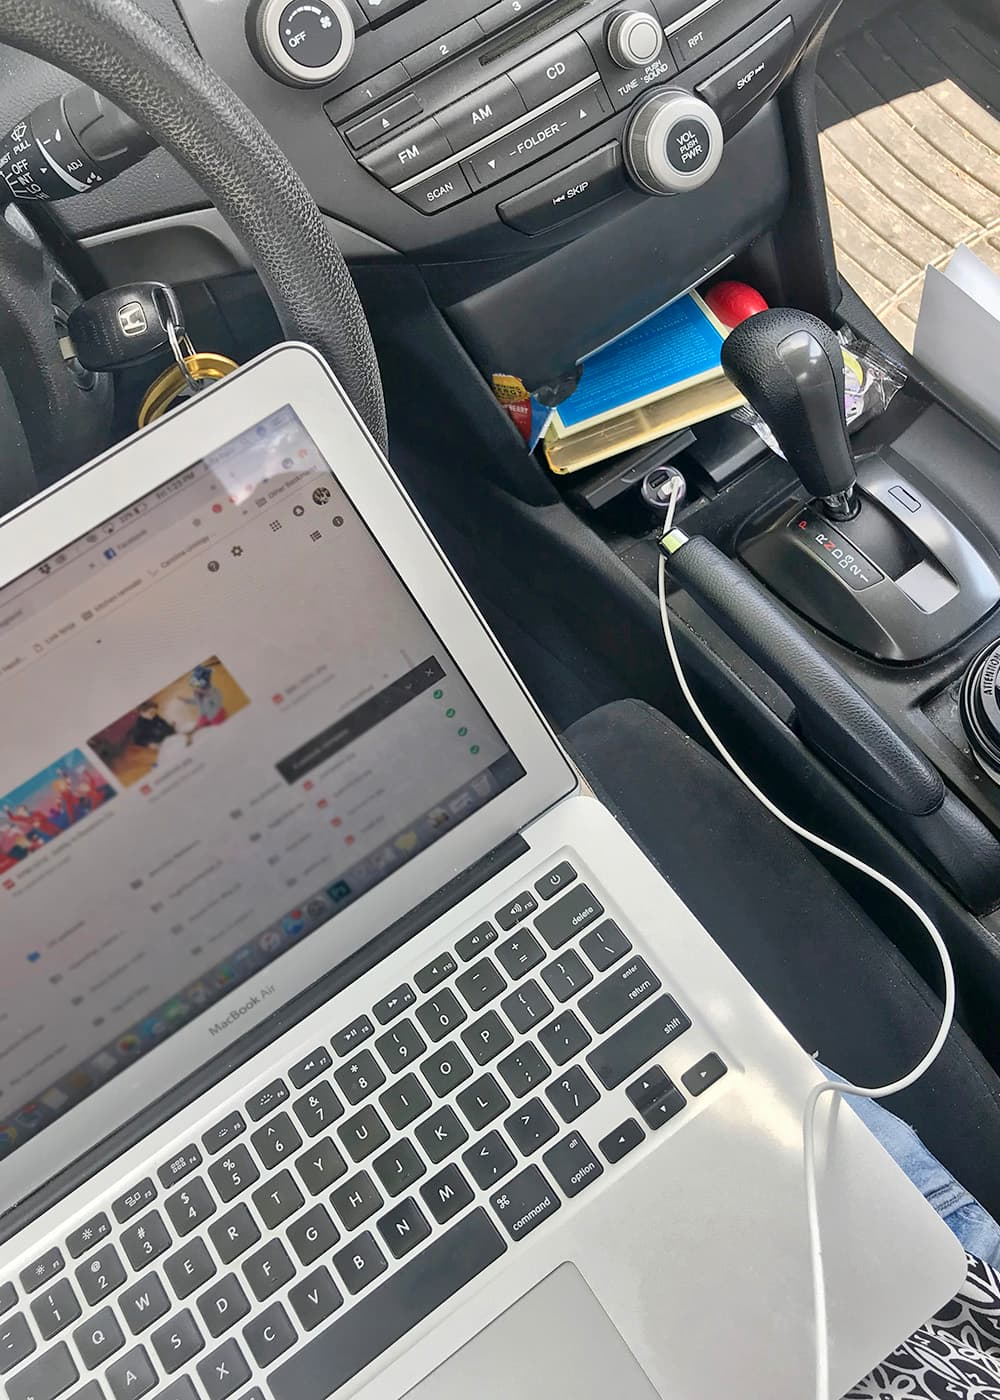 Parked in the afternoon carline with my laptop & hotspot waiting to pick up my kids